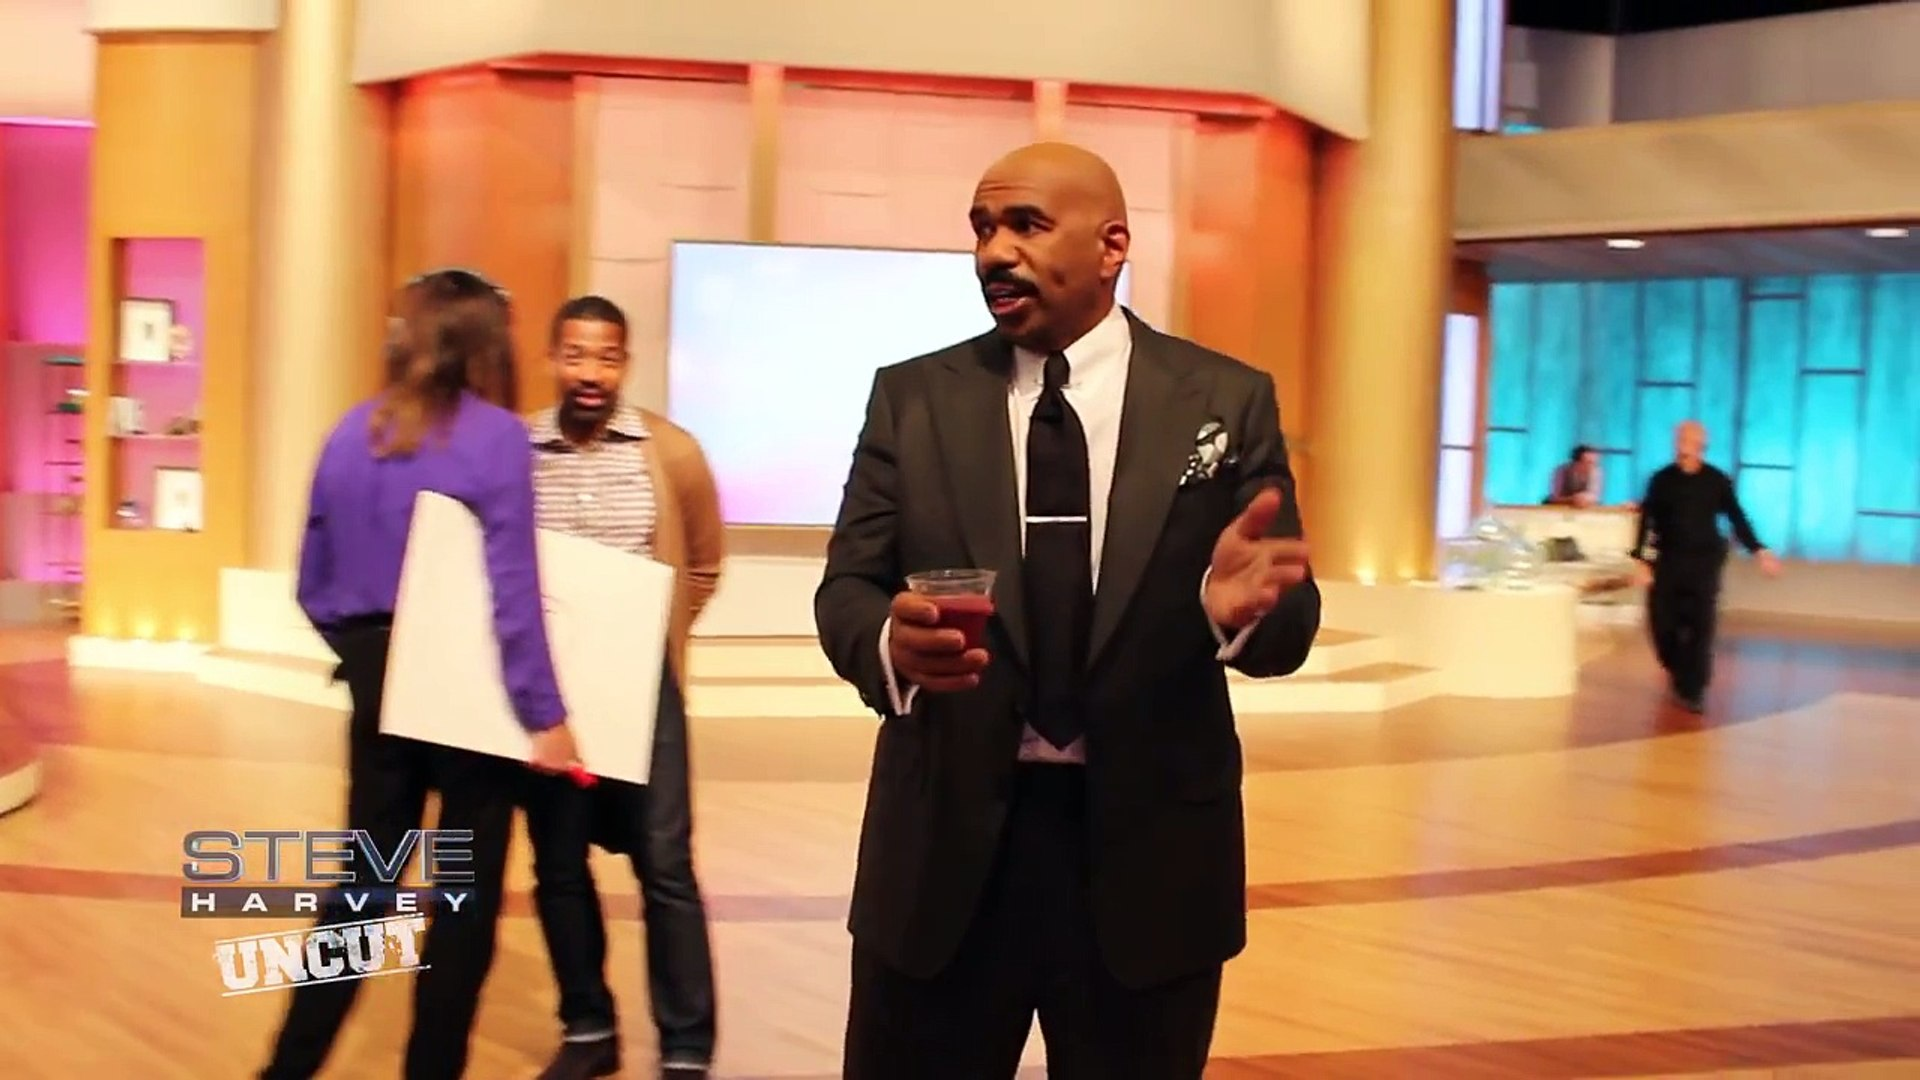 Steve Harvey Uncut: Gods plan is way bigger || STEVE HARVEY